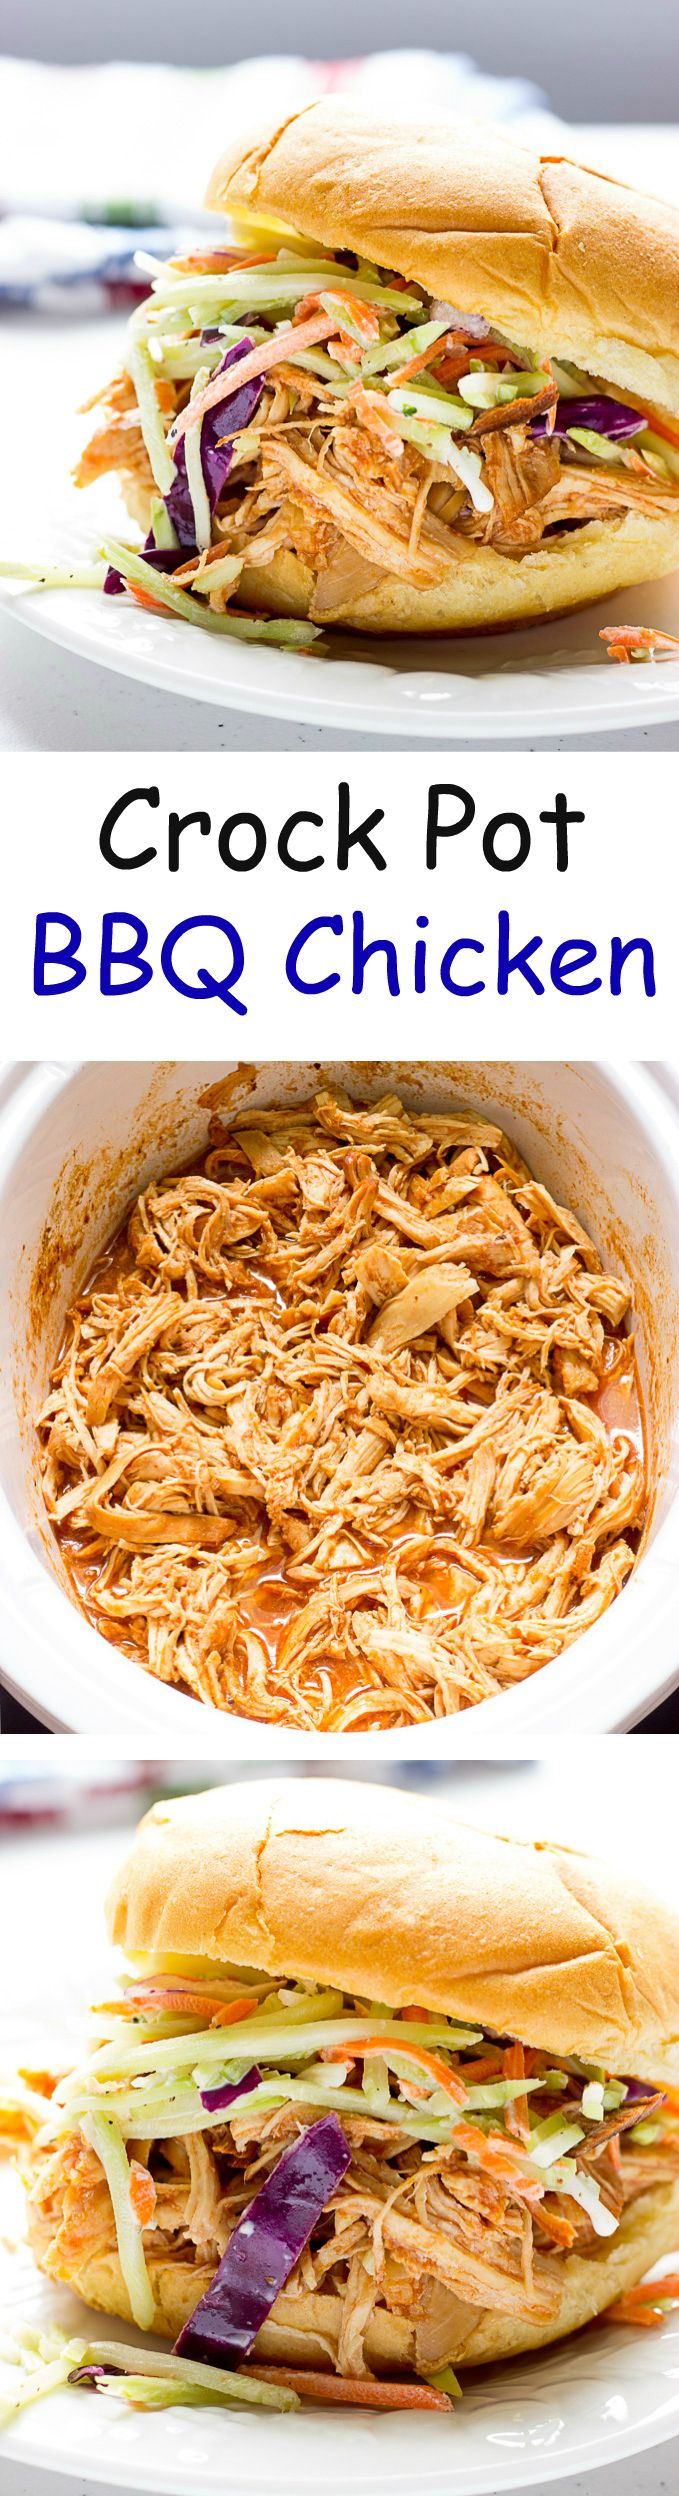 Crock Pot BBQ Chicken   Recipe   Sauces, Homemade and Barbecue